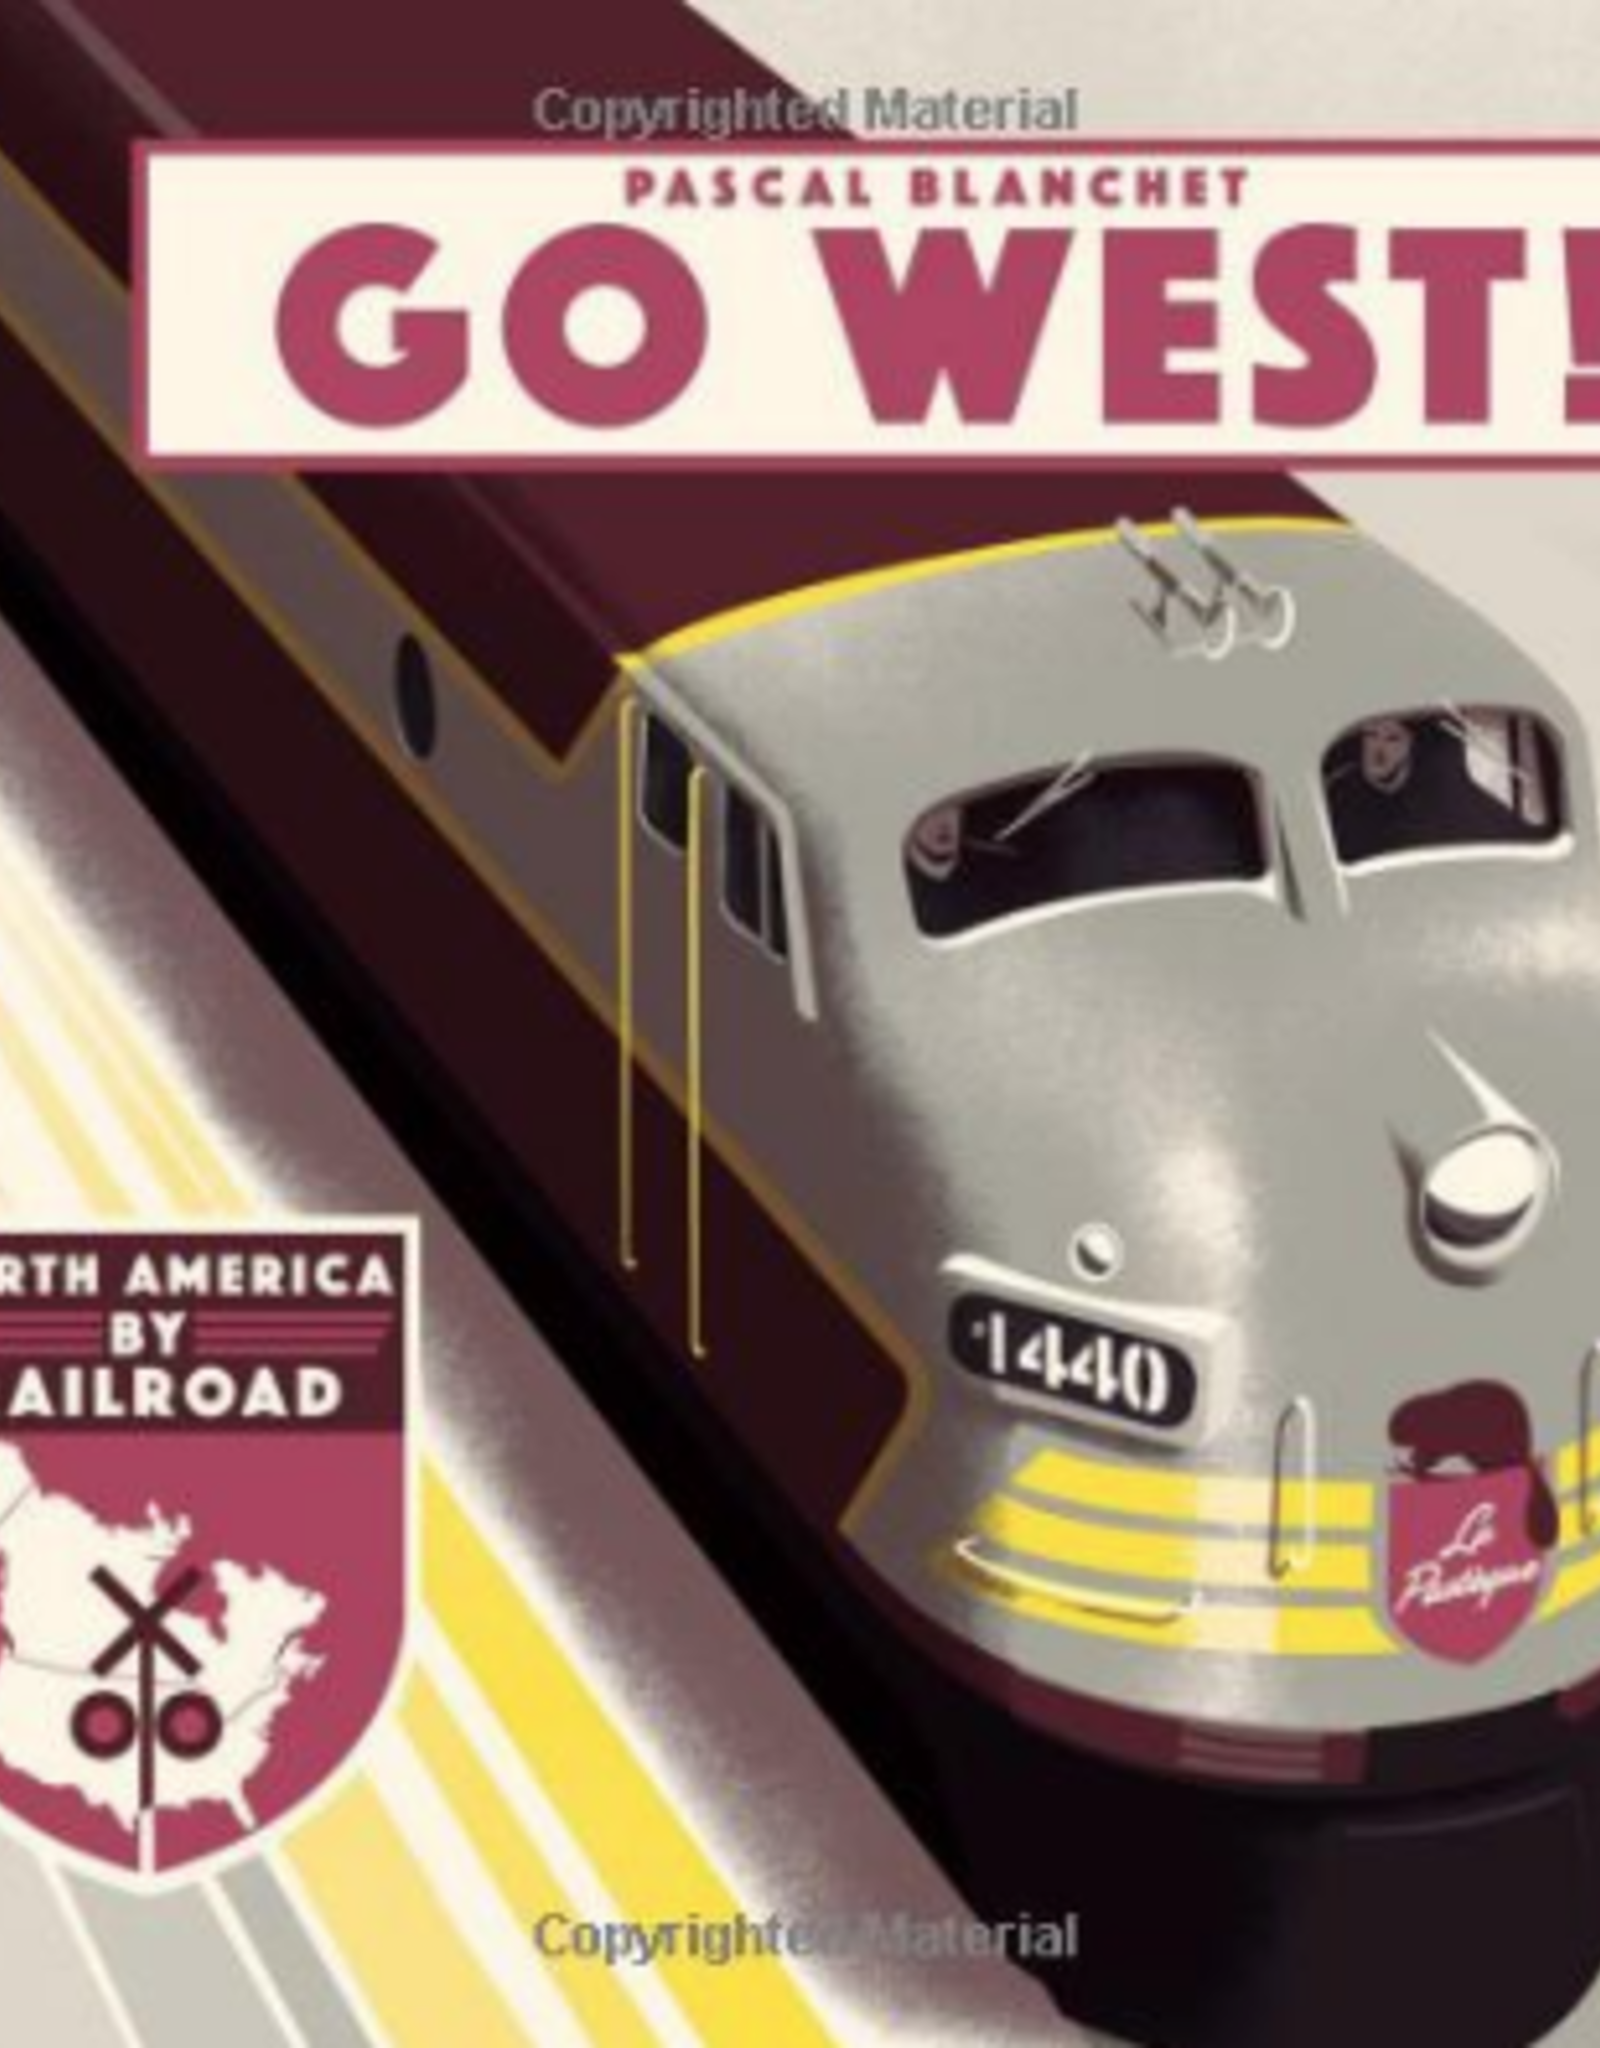 Go West! by Pascal Blanchet